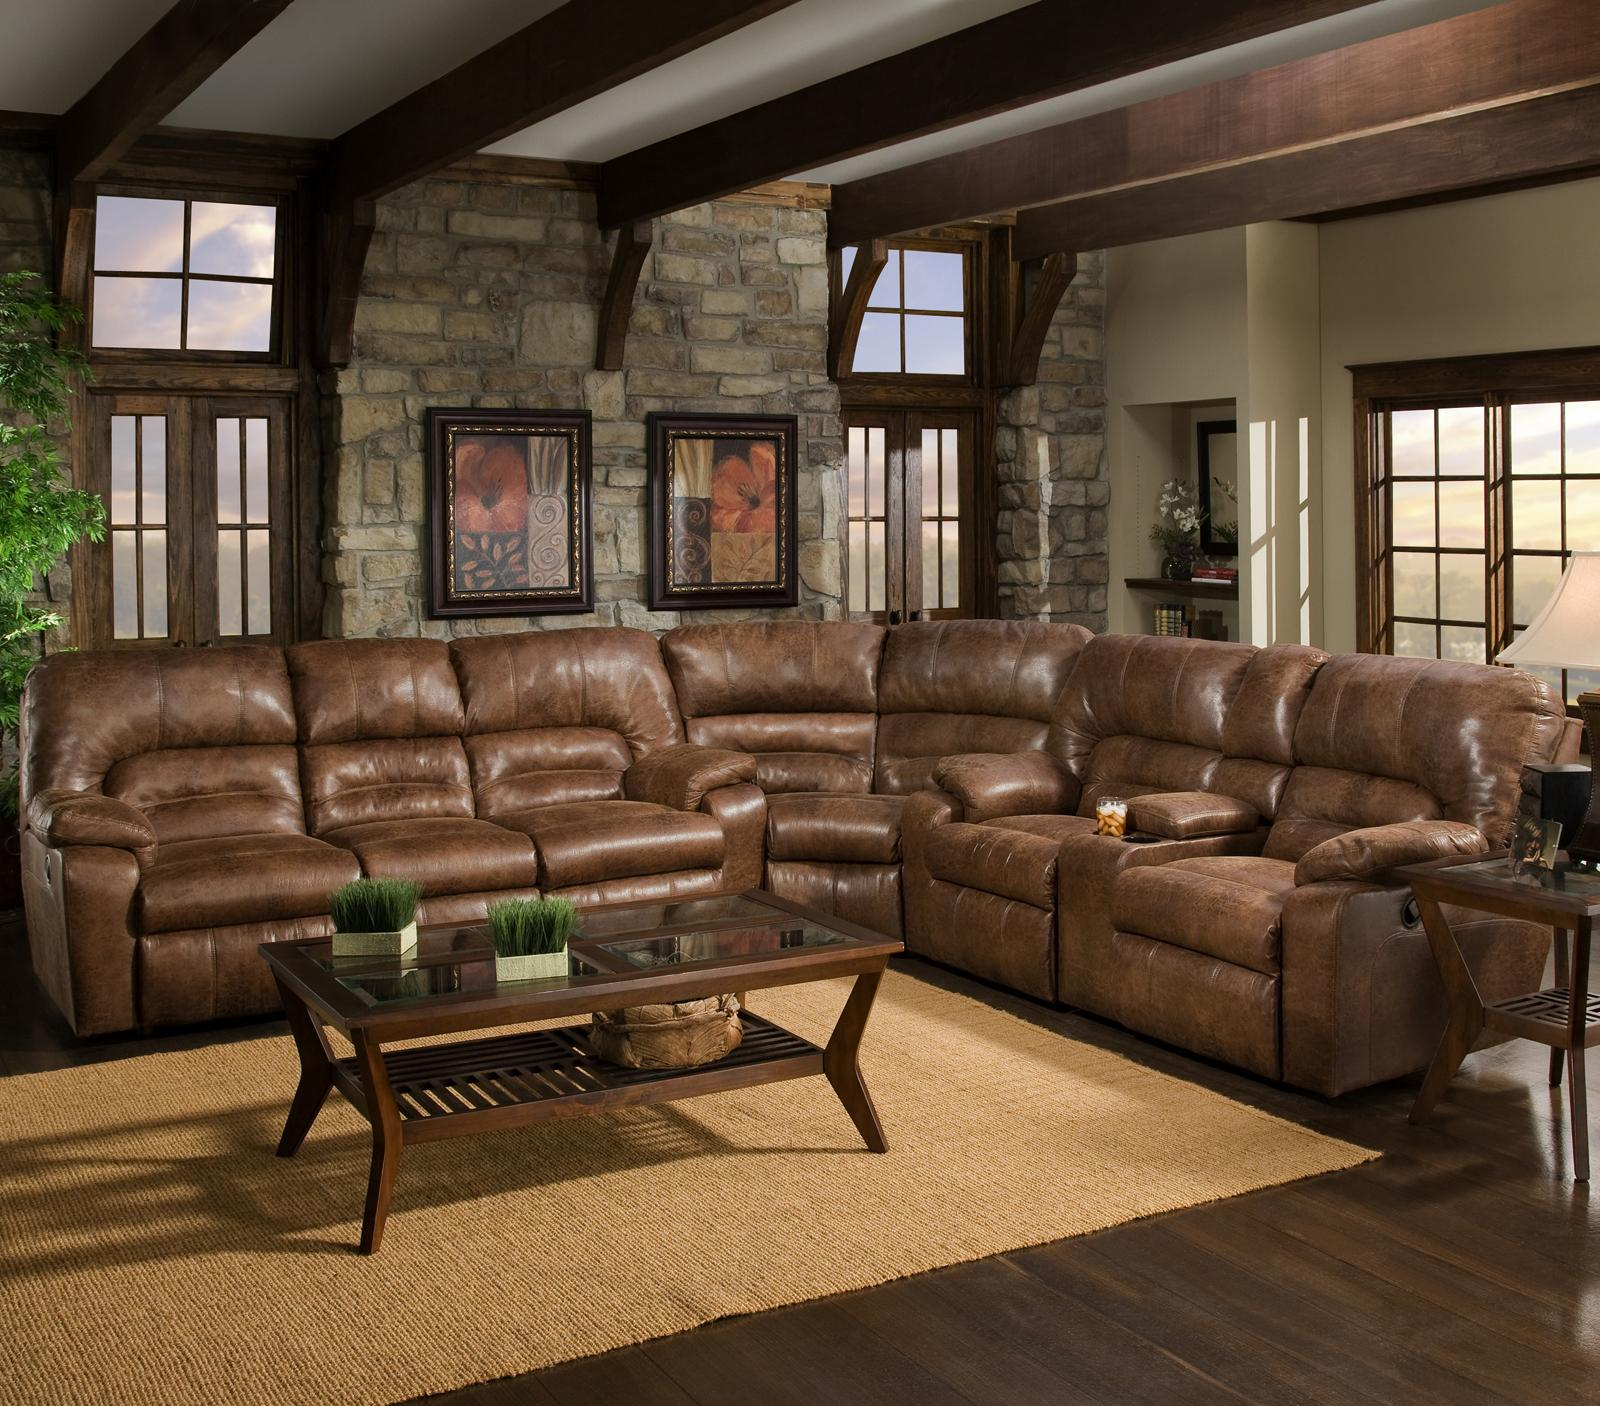 Excellent wilcox furniture for home furniture with wilcox furniture corpus christi